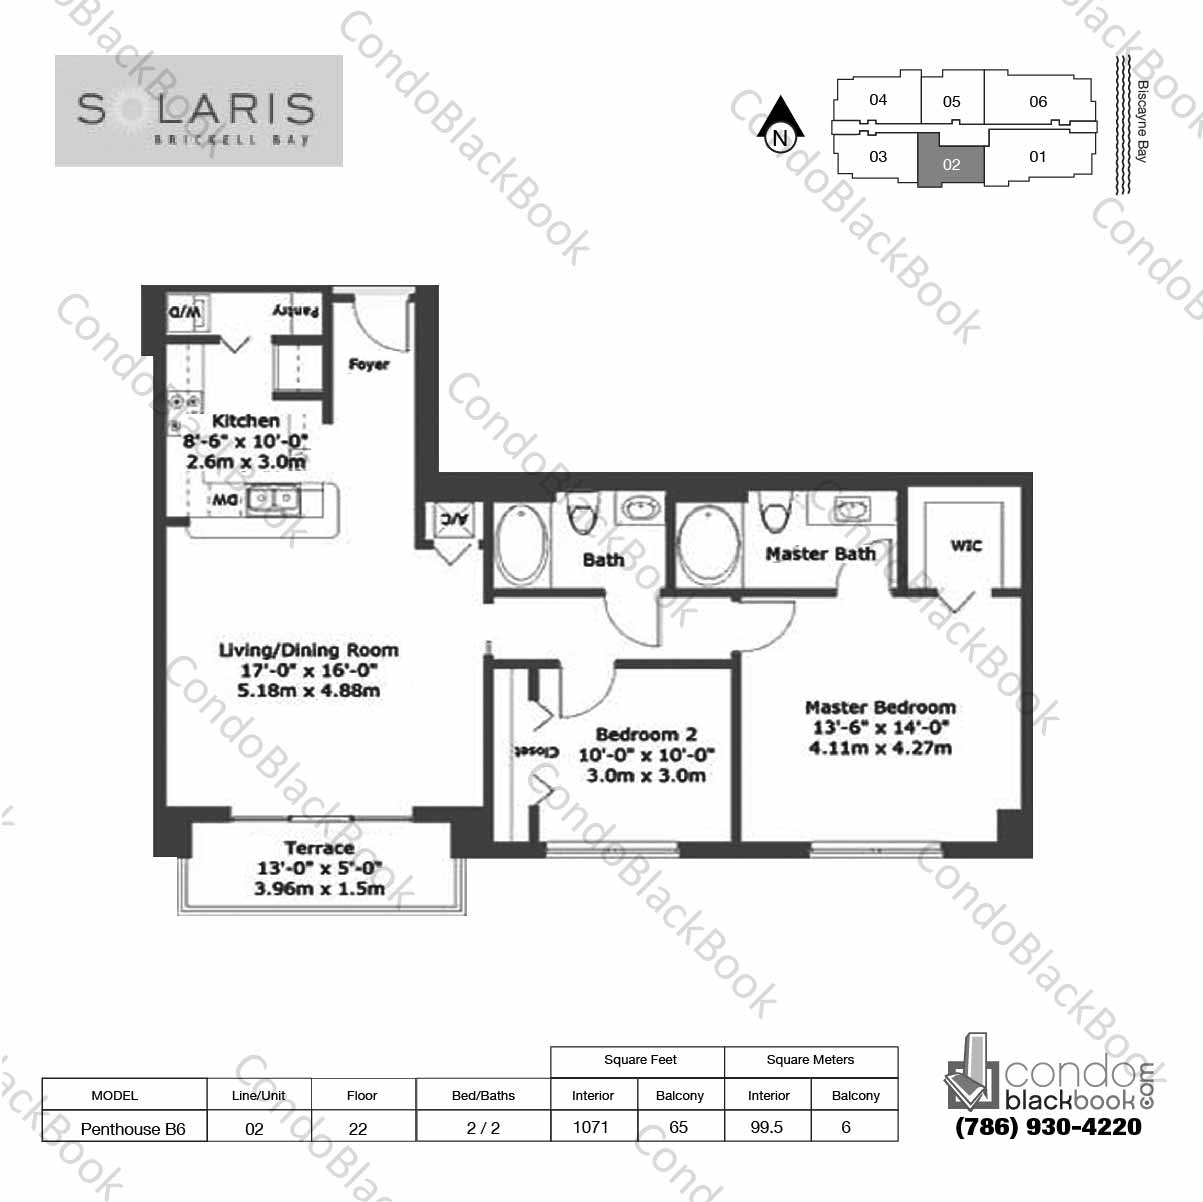 Floor plan for Solaris at Brickell Brickell Miami, model Penthouse B6, line 02,  2 / 2 bedrooms, 1071 sq ft